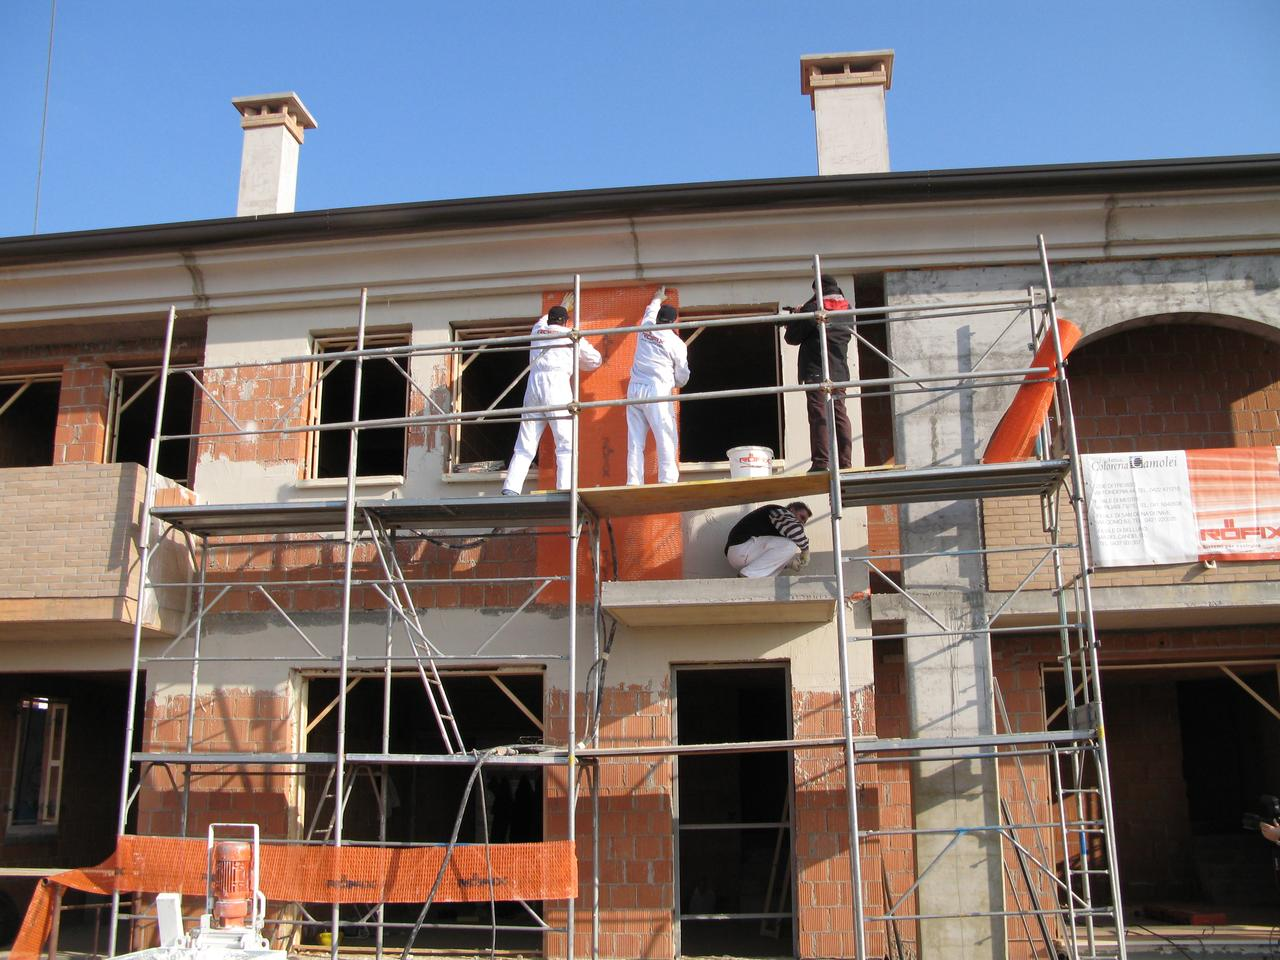 Sisma Calce being applied to a building exterior